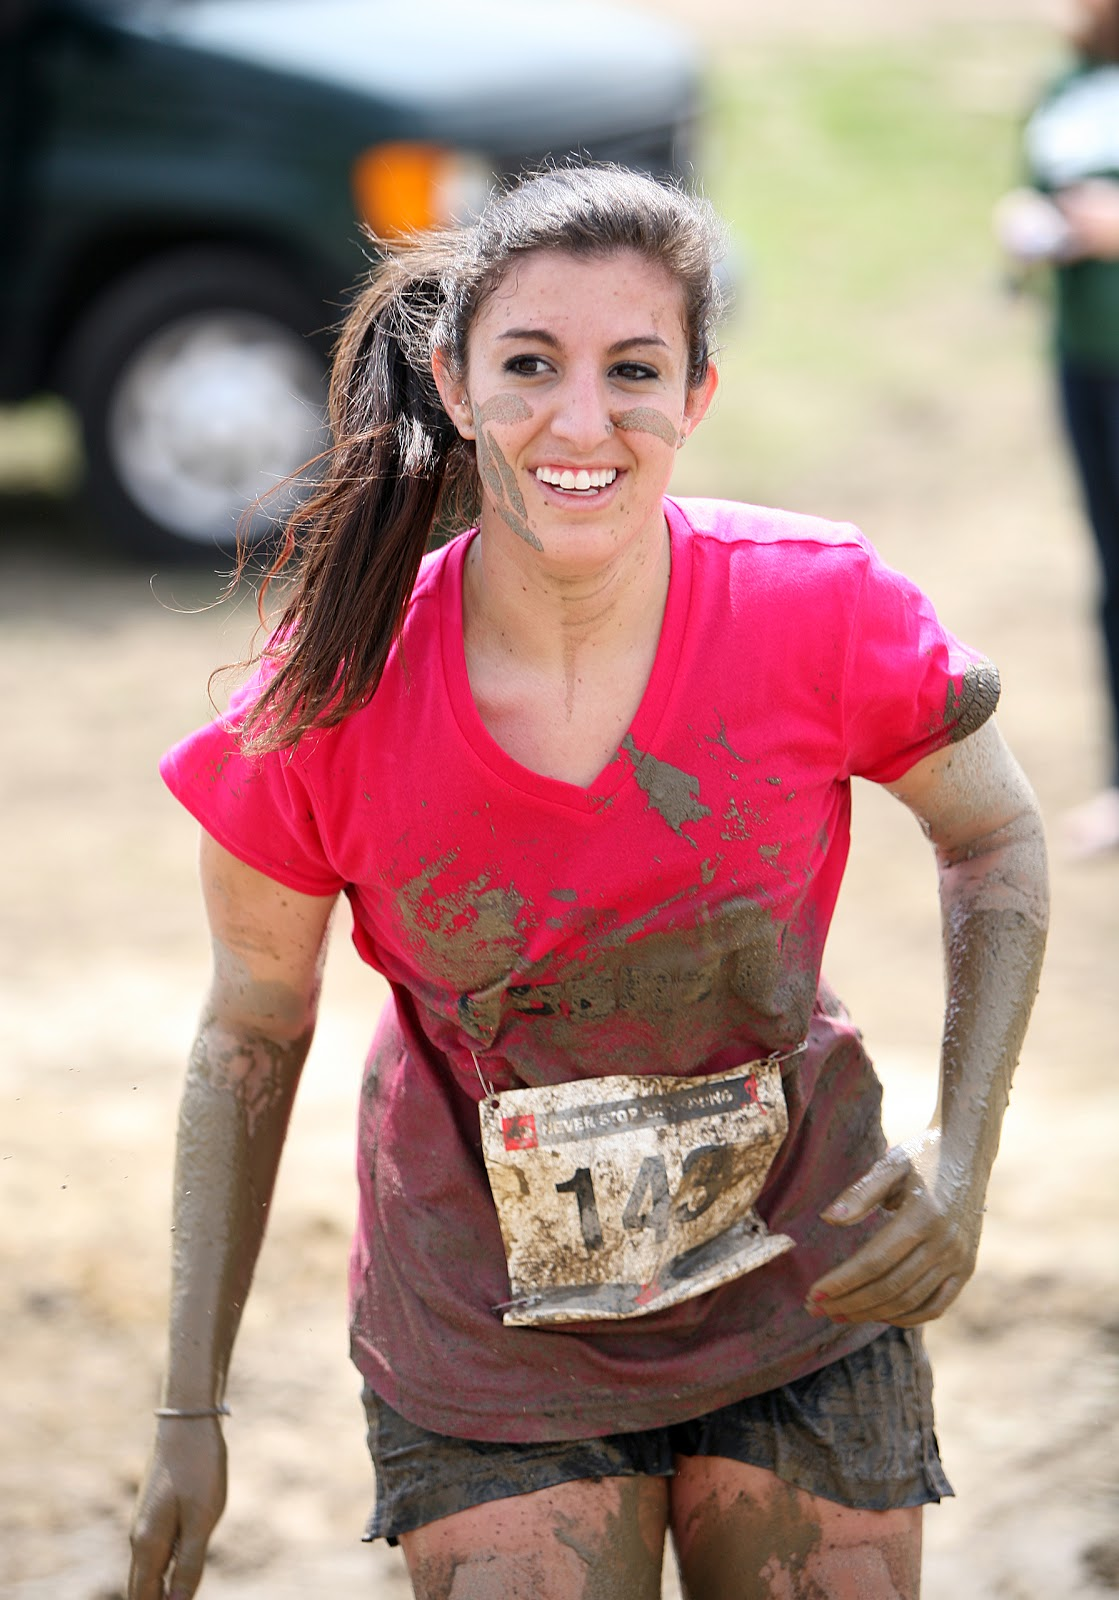 2b322ccdbbb57 The Mud Run is a CHALLENGING course full of MUD and just clean fun brought  to you by the The Few and Proud Marines of ...